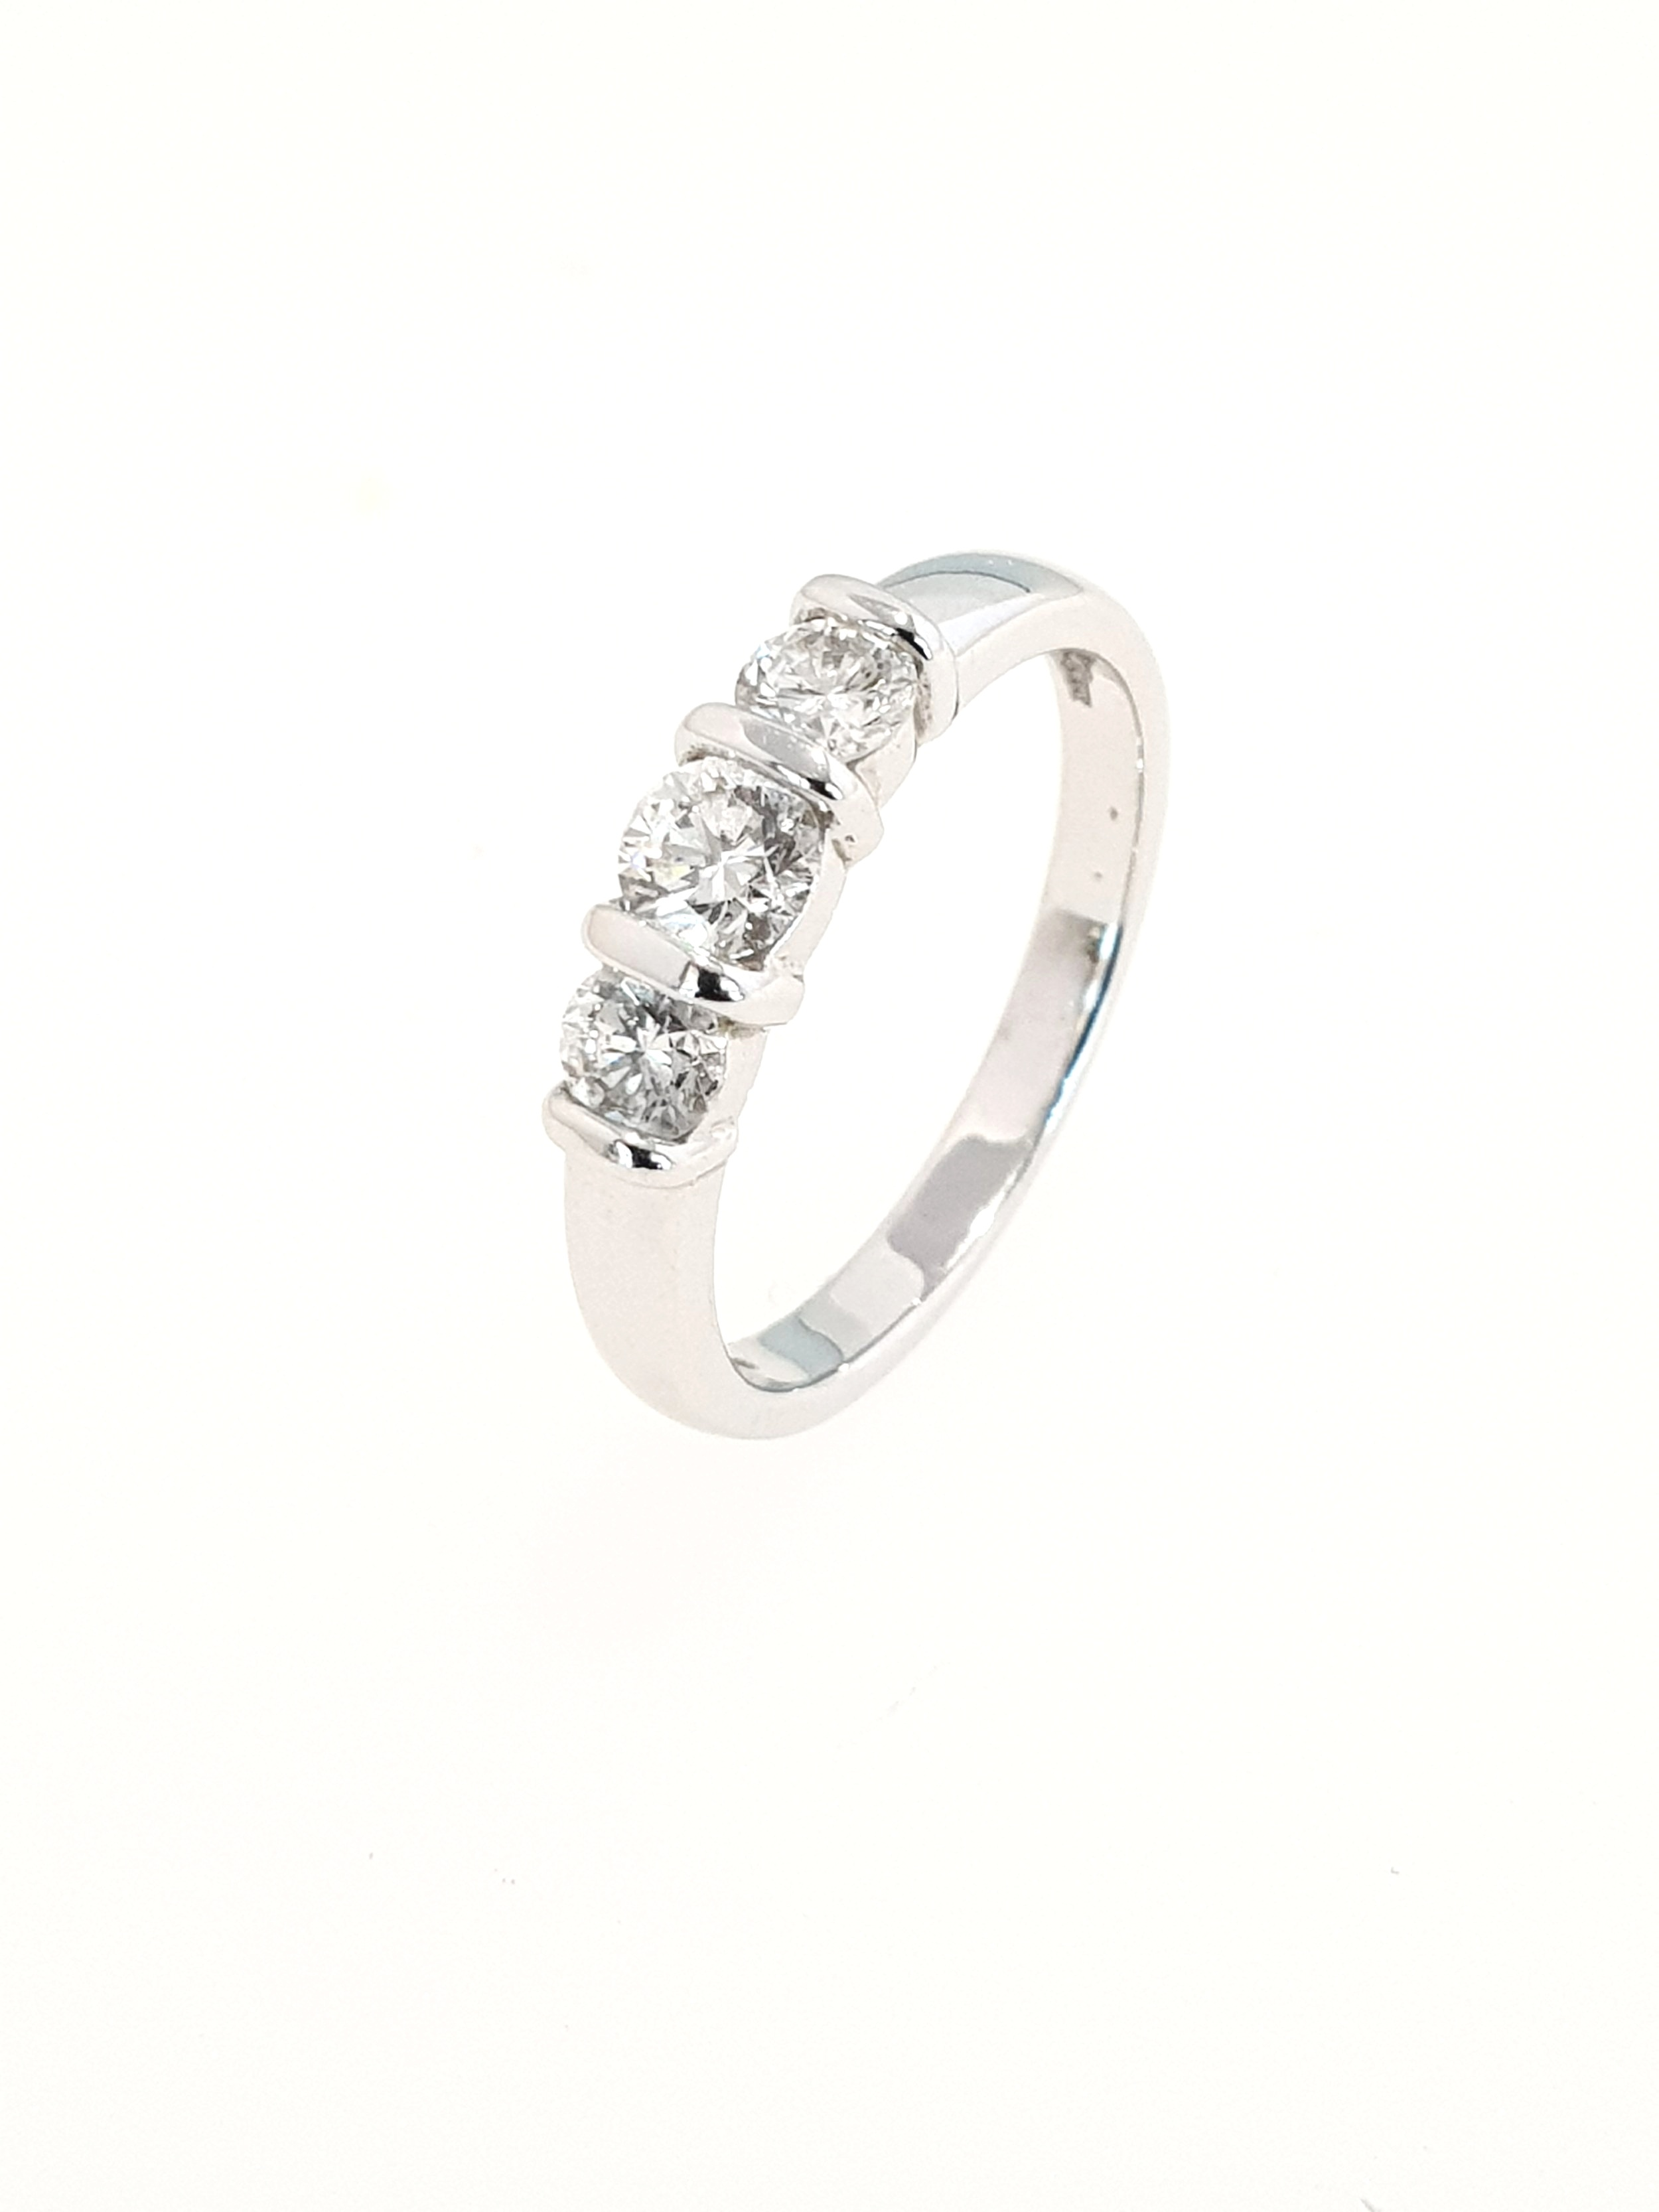 3 Stone Diamond Ring in White Gold  .75ct, G, Si2  Stock Code: N8334  £3000